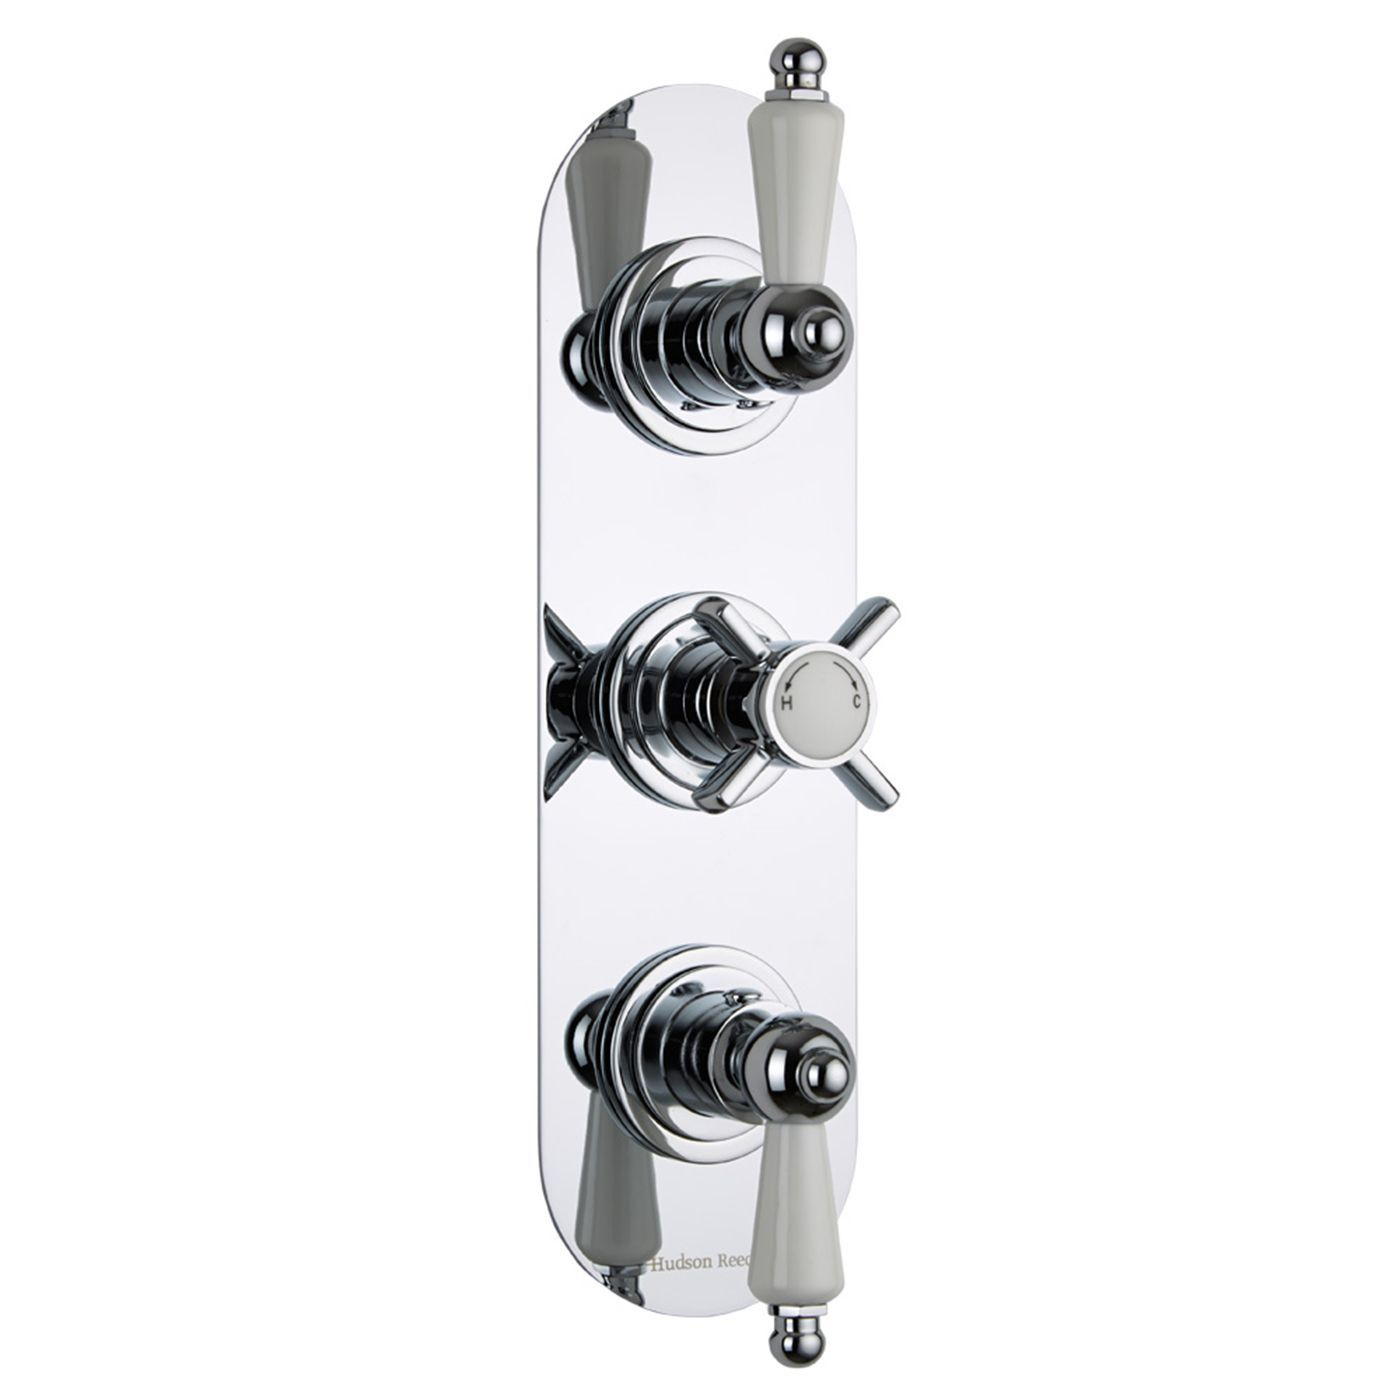 Beaumont Concealed 3 Outlet Triple with Diverter Thermostatic